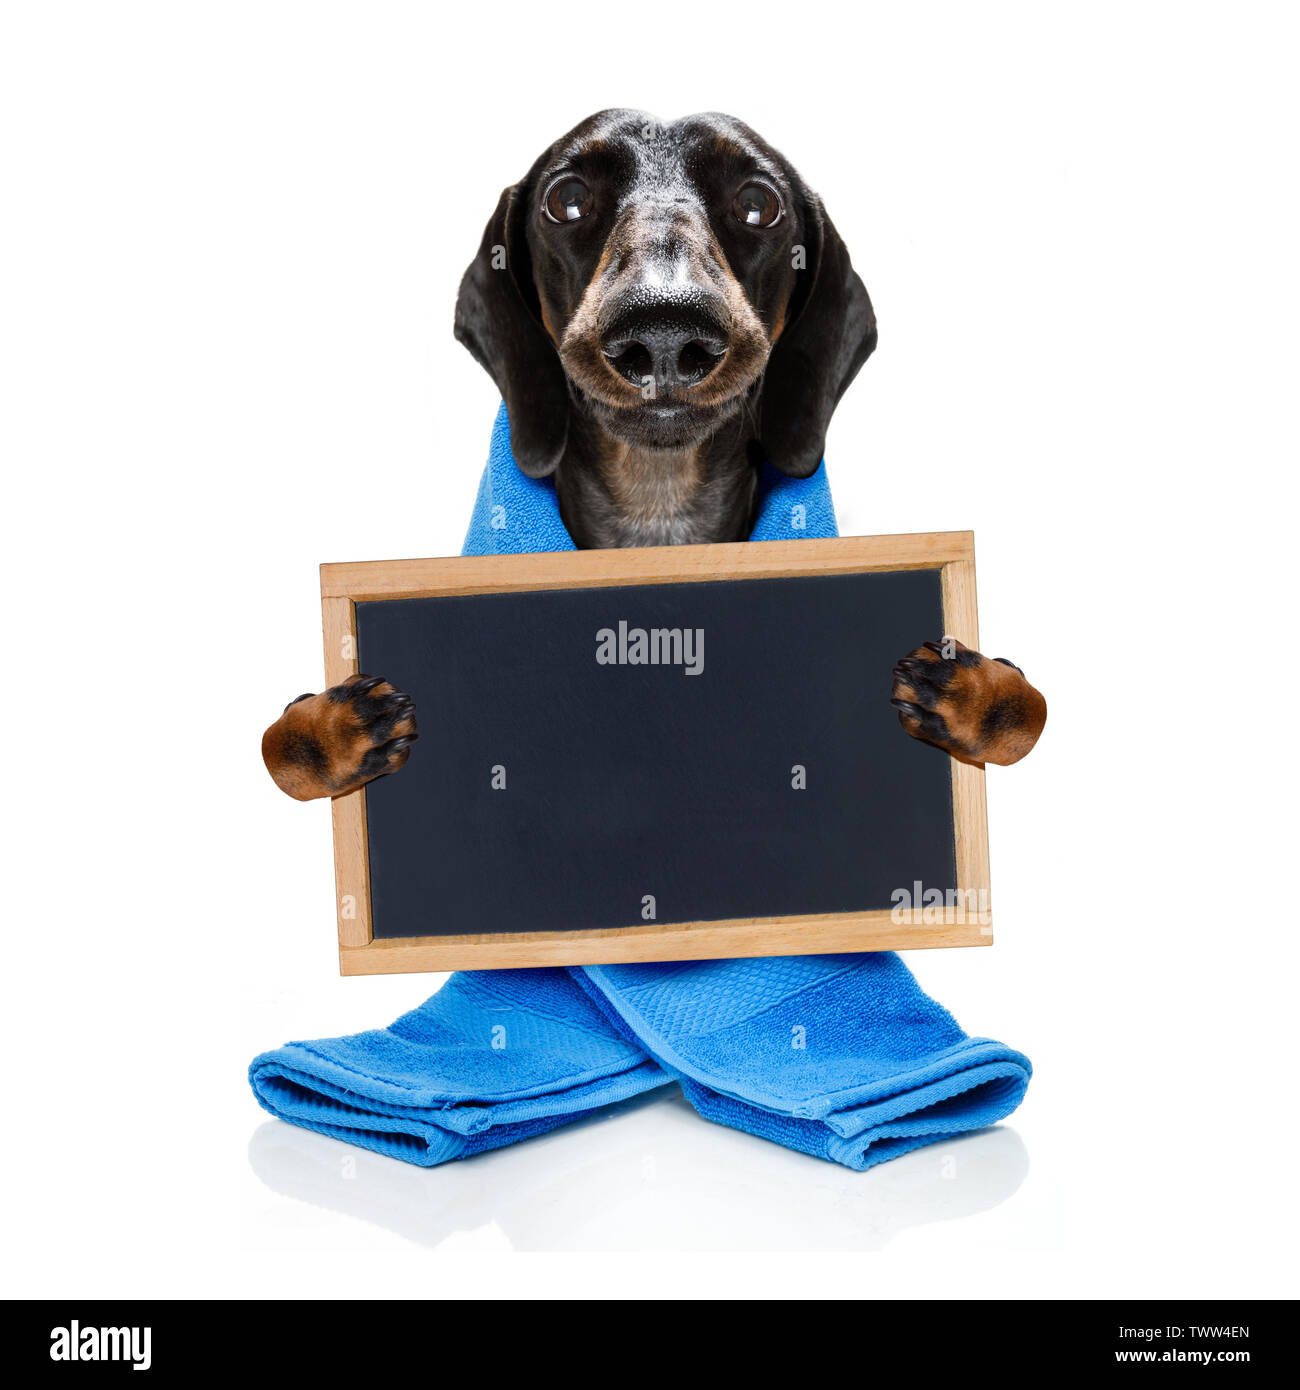 sausage dachshund dog  in a bathtub under shower not so amused about that ,wearing a  towel or bathrobe or towel dressing gown - Stock Image